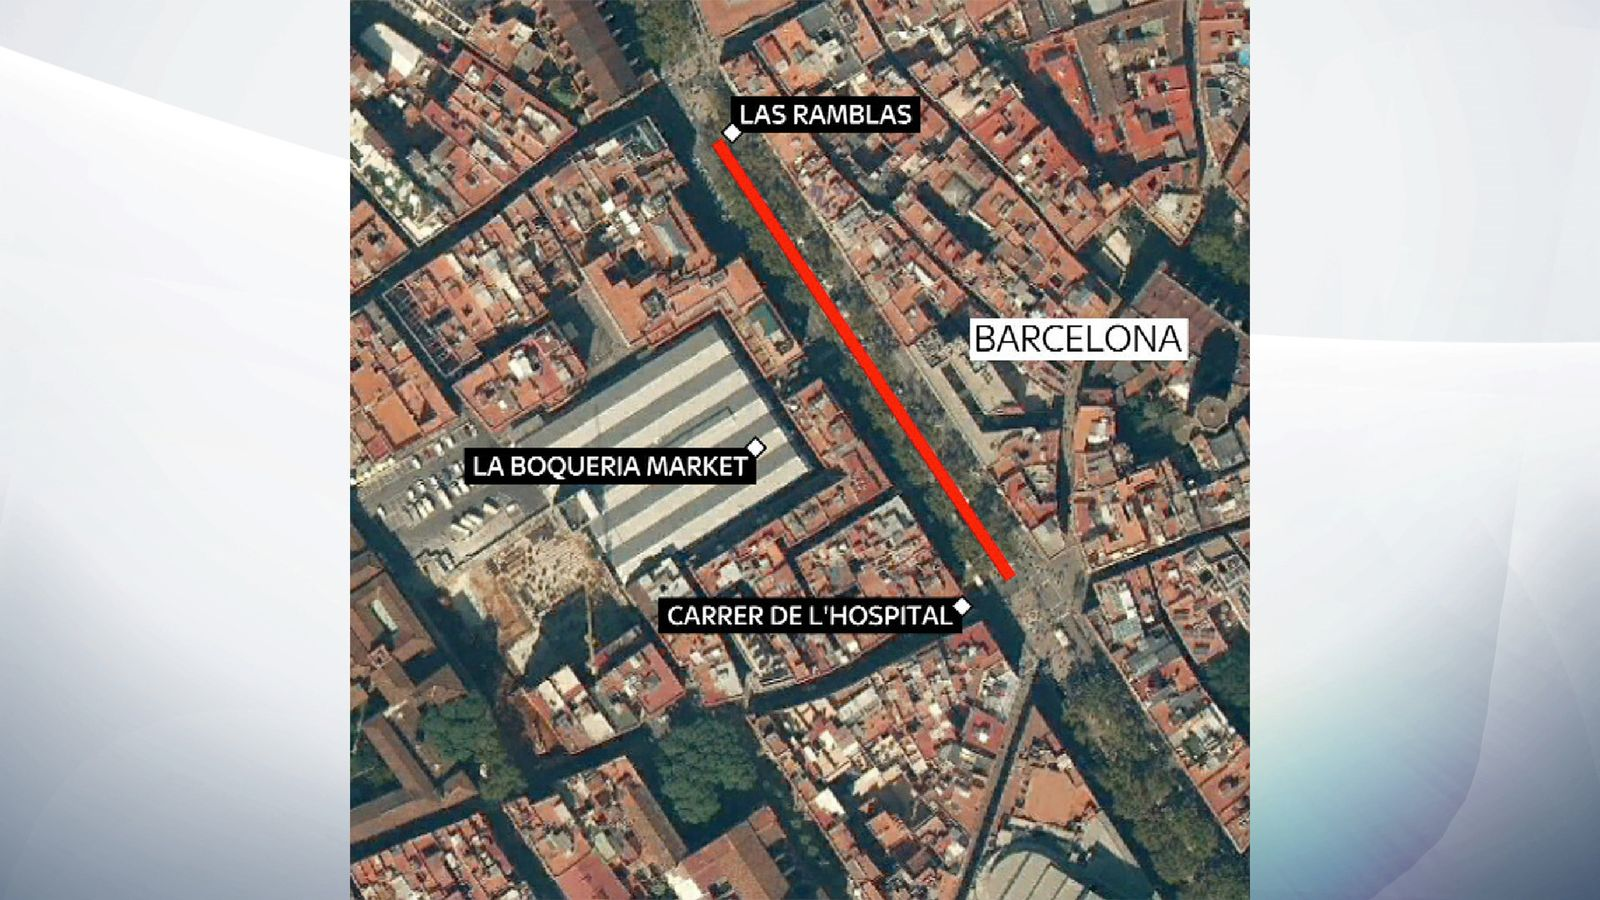 The route taken by the van through Las Ramblas